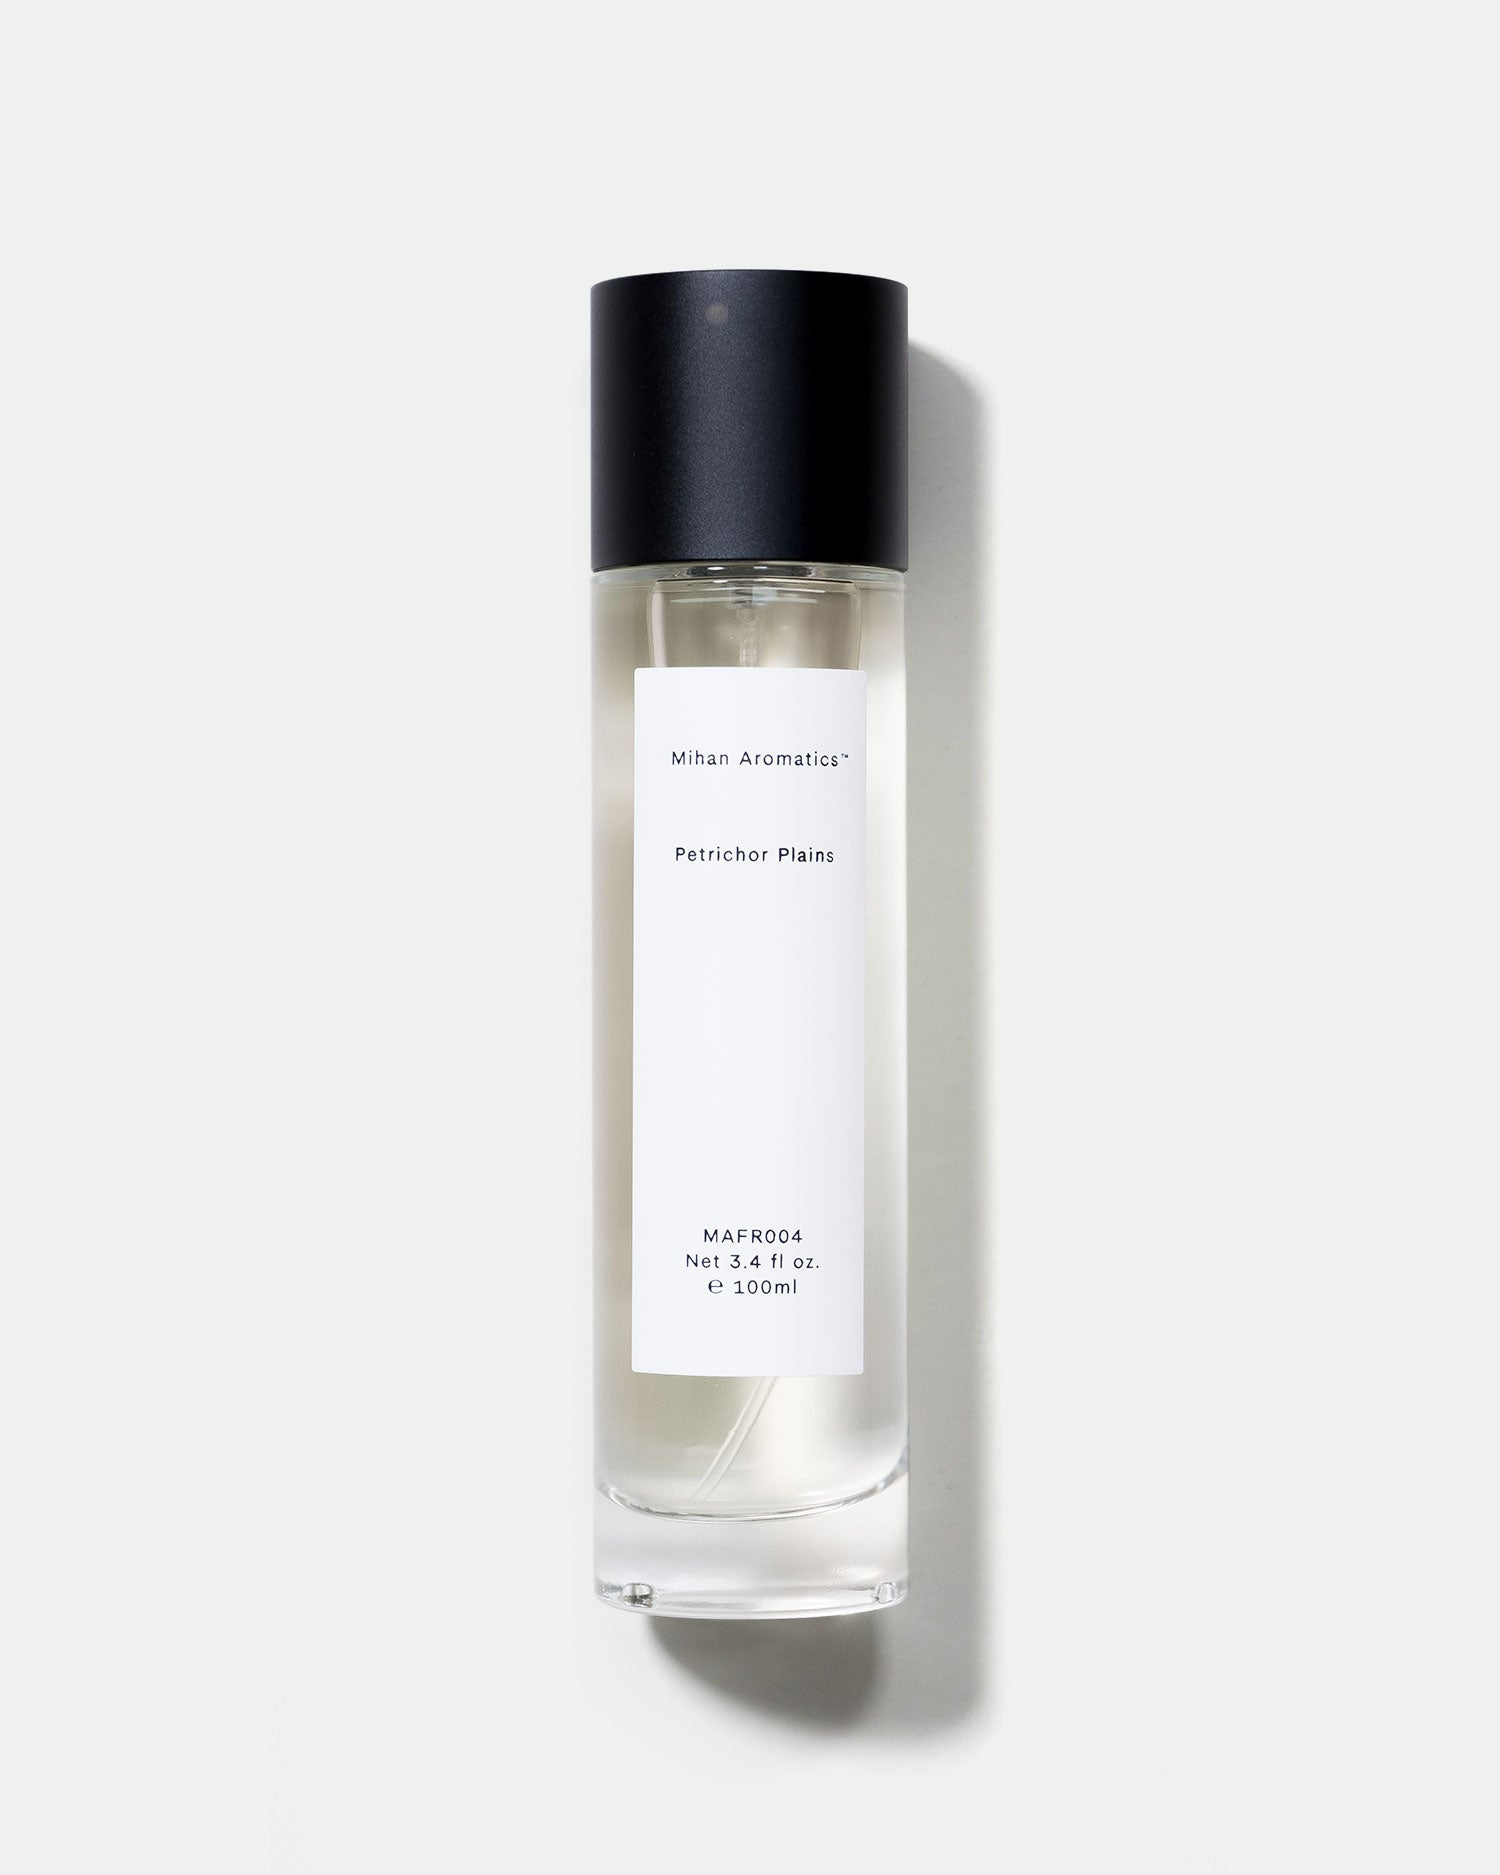 Mihan Aromatics Fragrance - Petrichor Plains